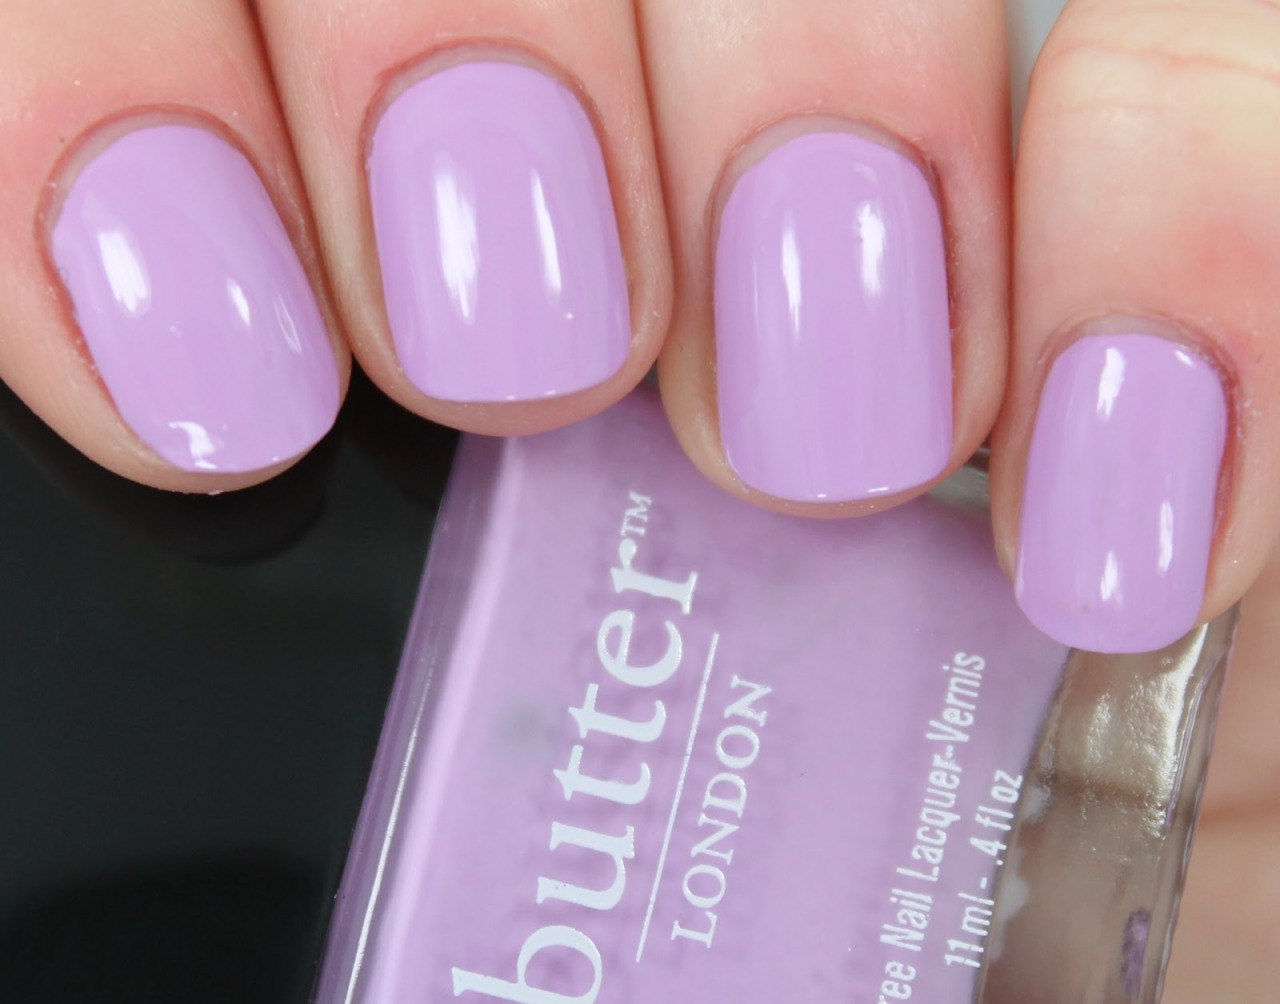 Butter London Jasper and Molly Coddled